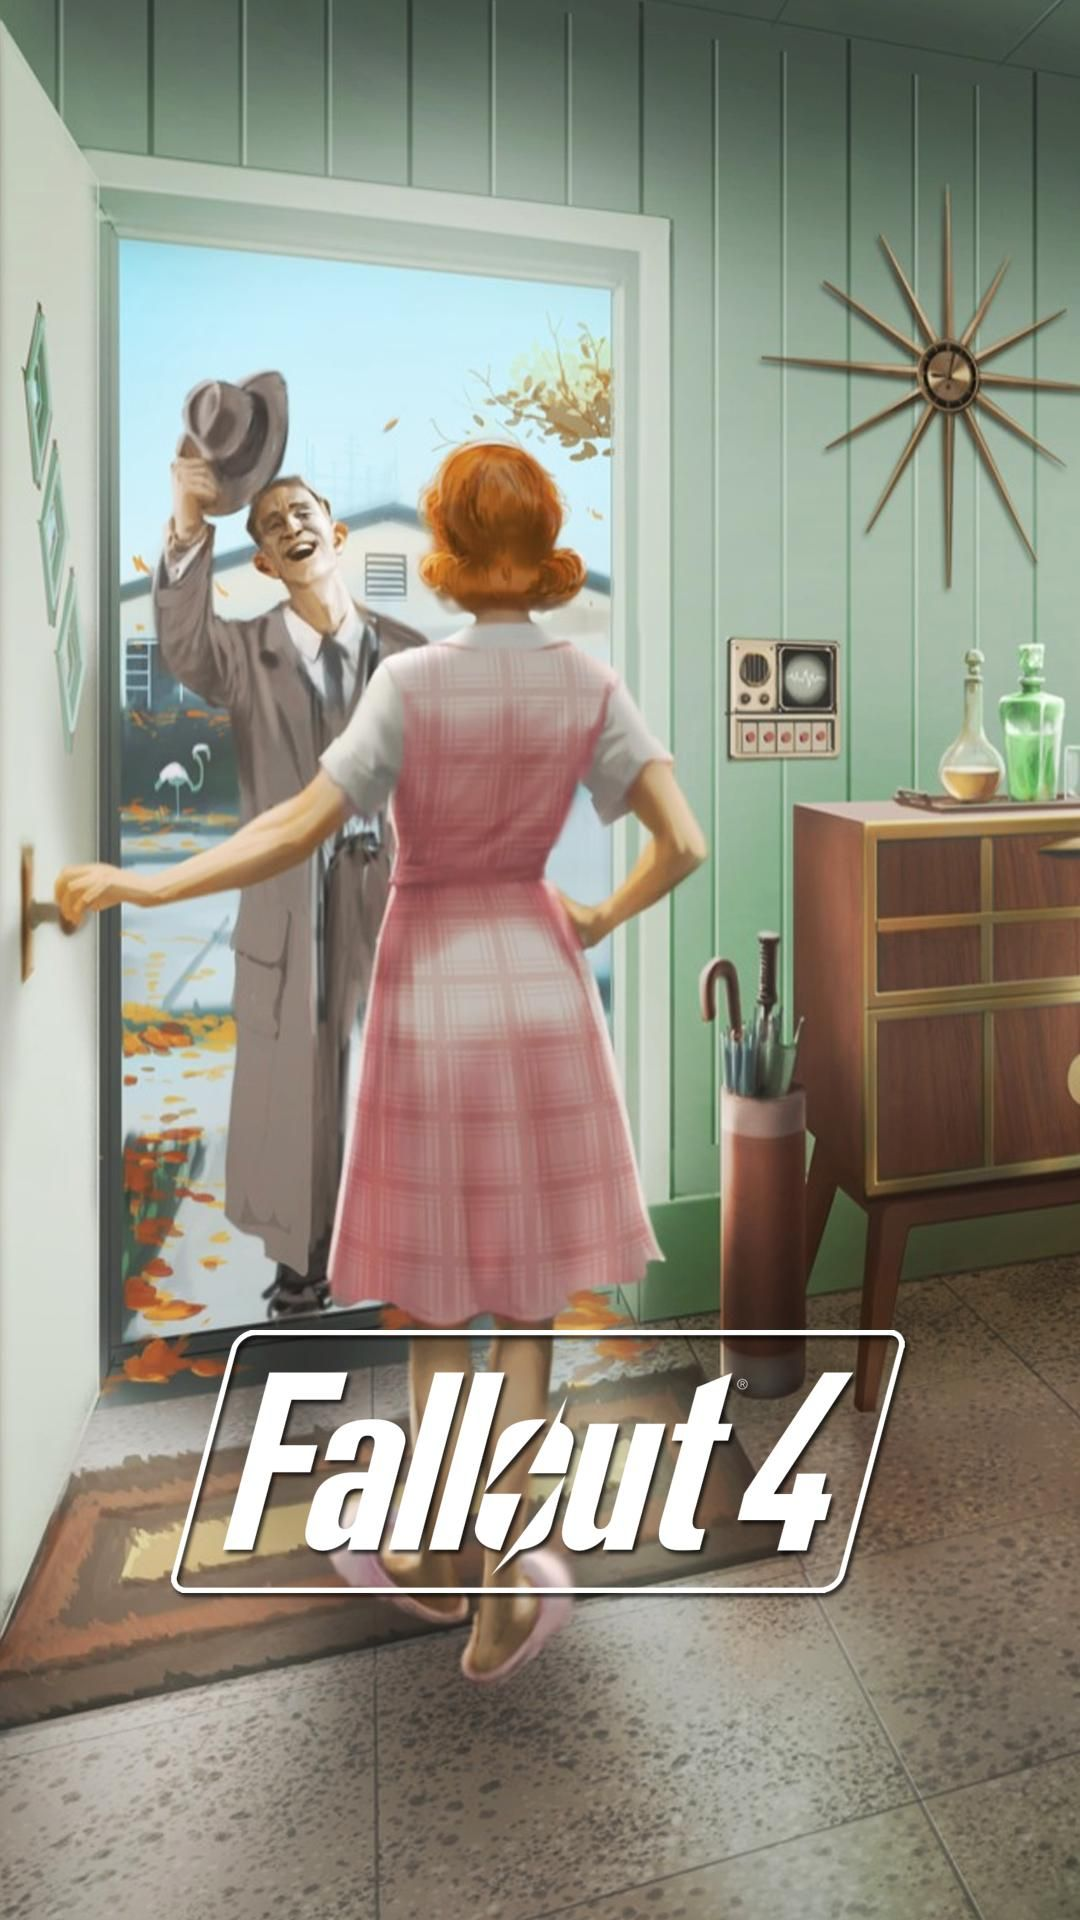 I Made Some Fallout 4 Lock Screen Wallpapers From E3 - Fallout 4 , HD Wallpaper & Backgrounds